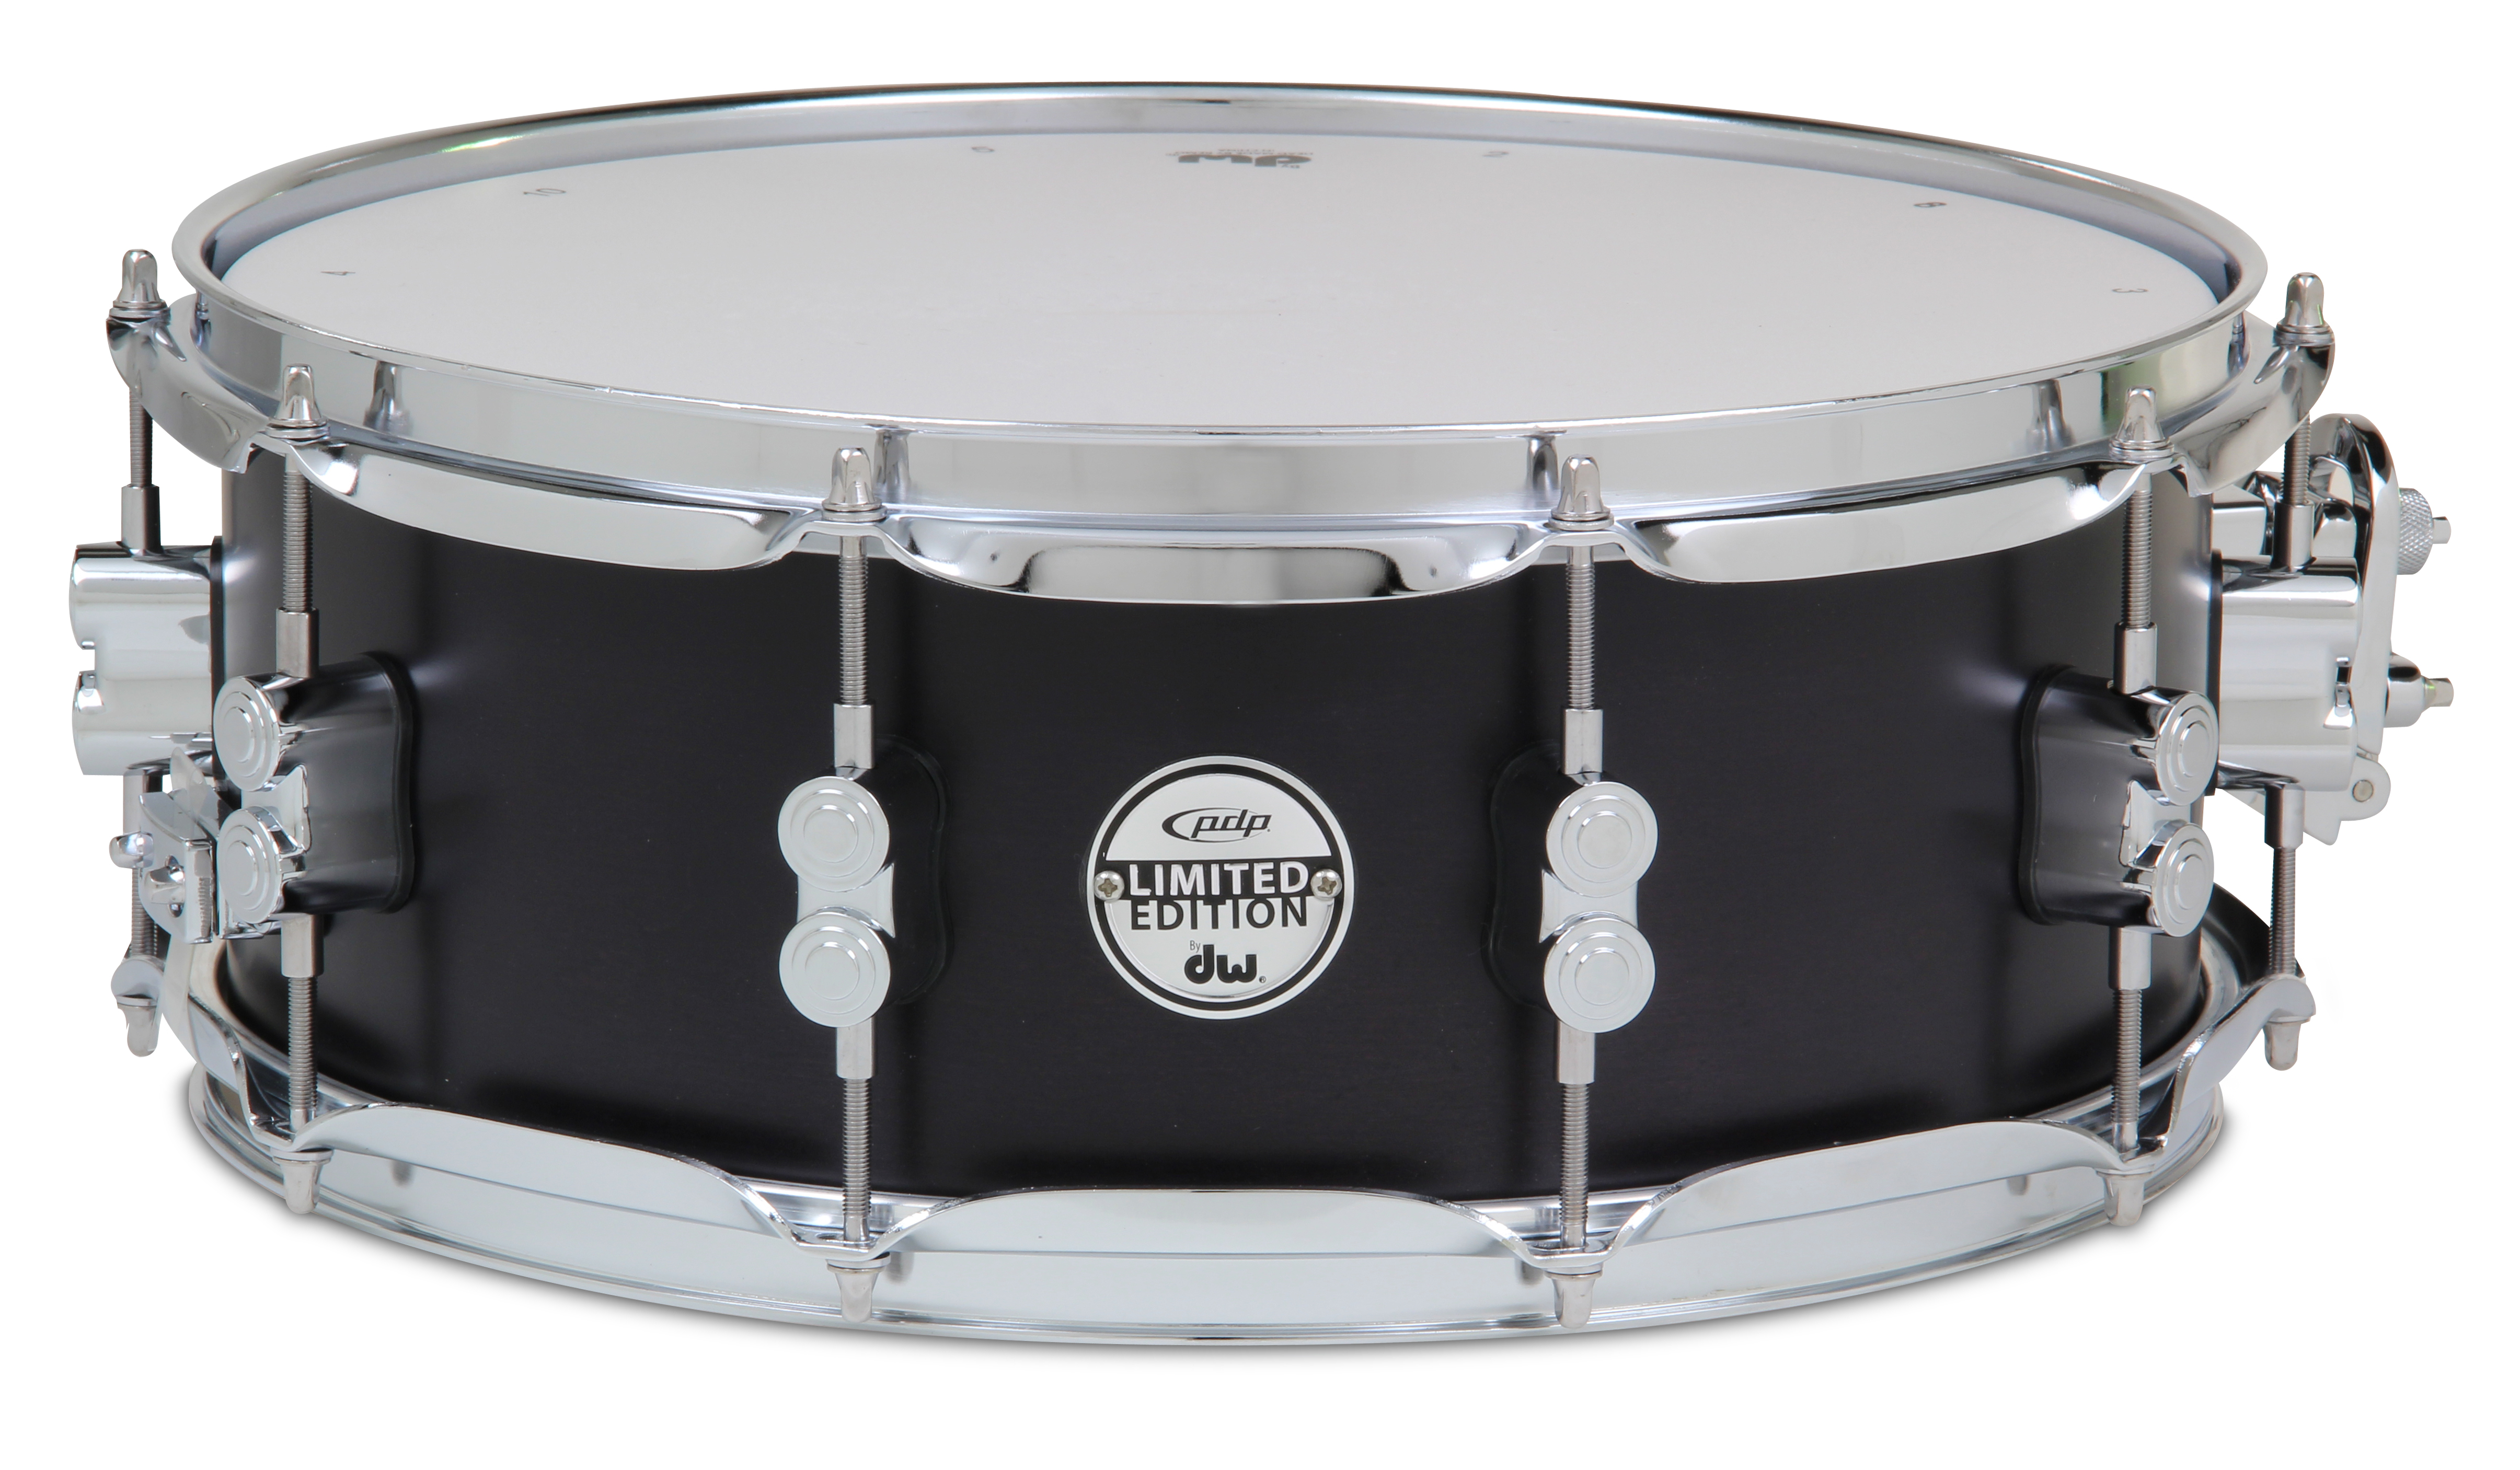 pdp limited edition 20 ply birch snares news audiofanzine. Black Bedroom Furniture Sets. Home Design Ideas